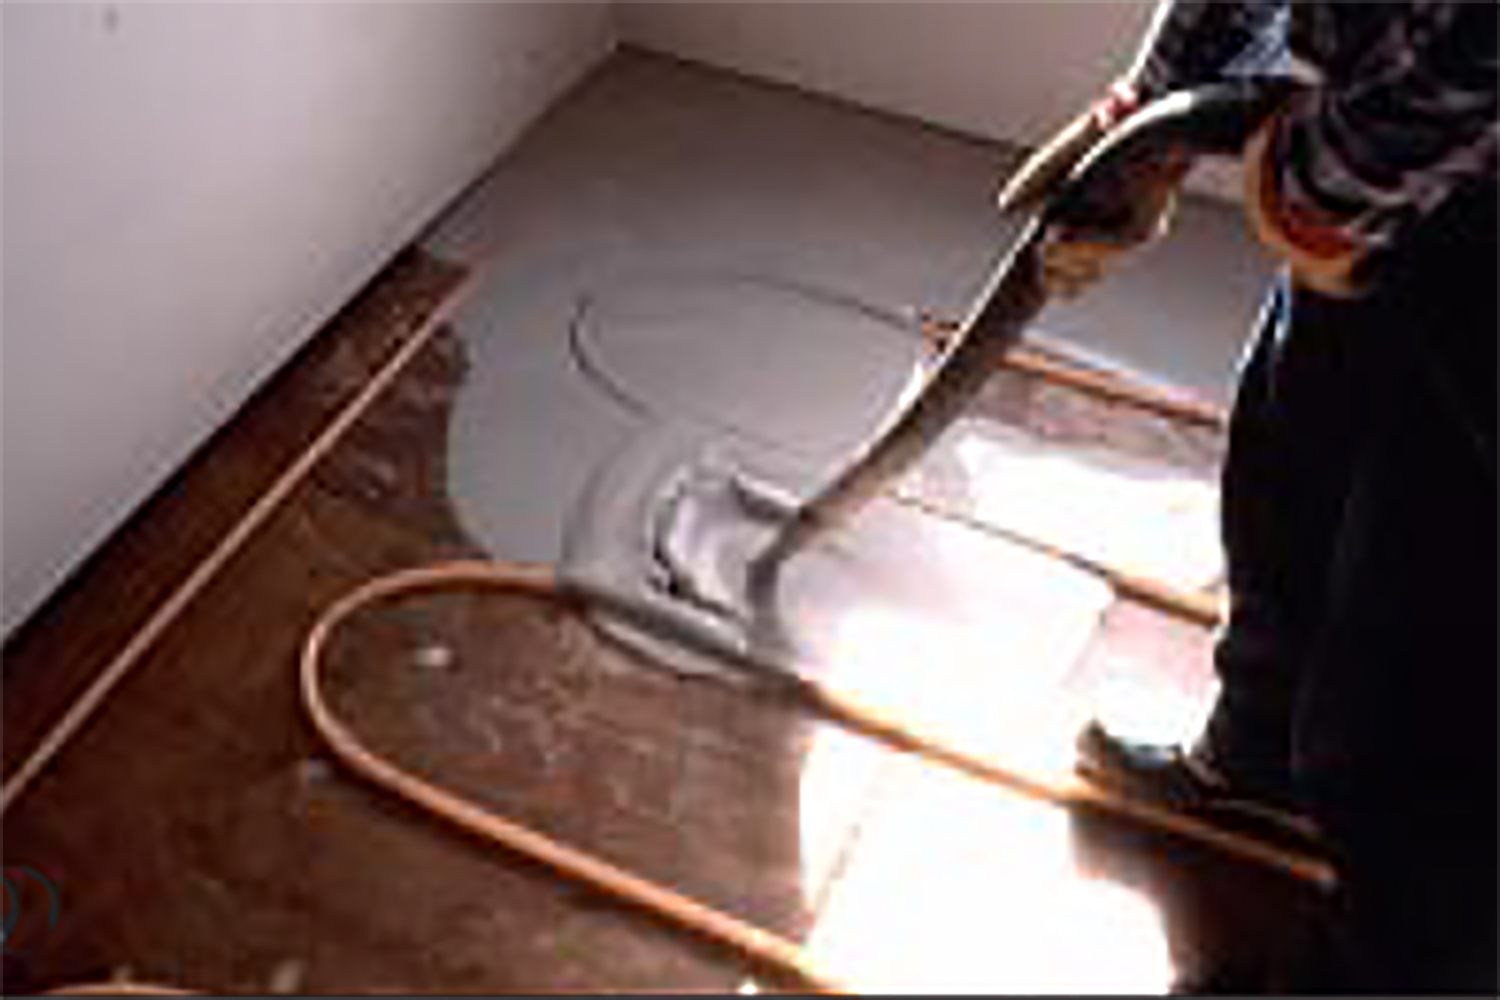 Hydronic Radiant Heat For Wood Framed Floors Jlc Online